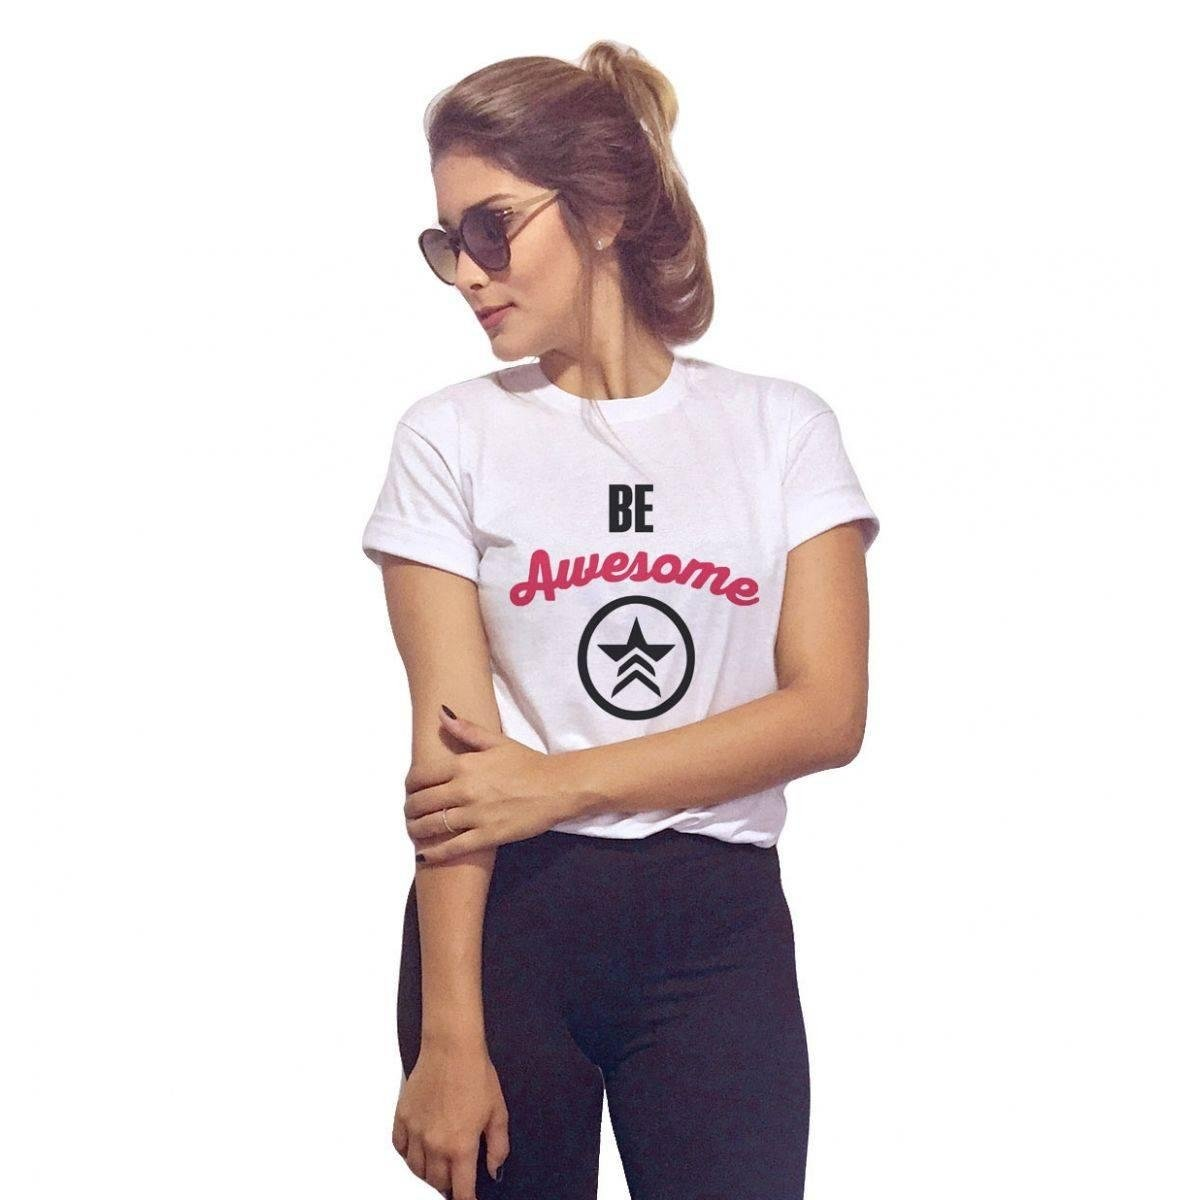 0c0b9f78b6 Look Camiseta Awesome Be Awesome Baby Baby Be Camiseta Branco Look Baby  Camiseta Branco Look Be ...